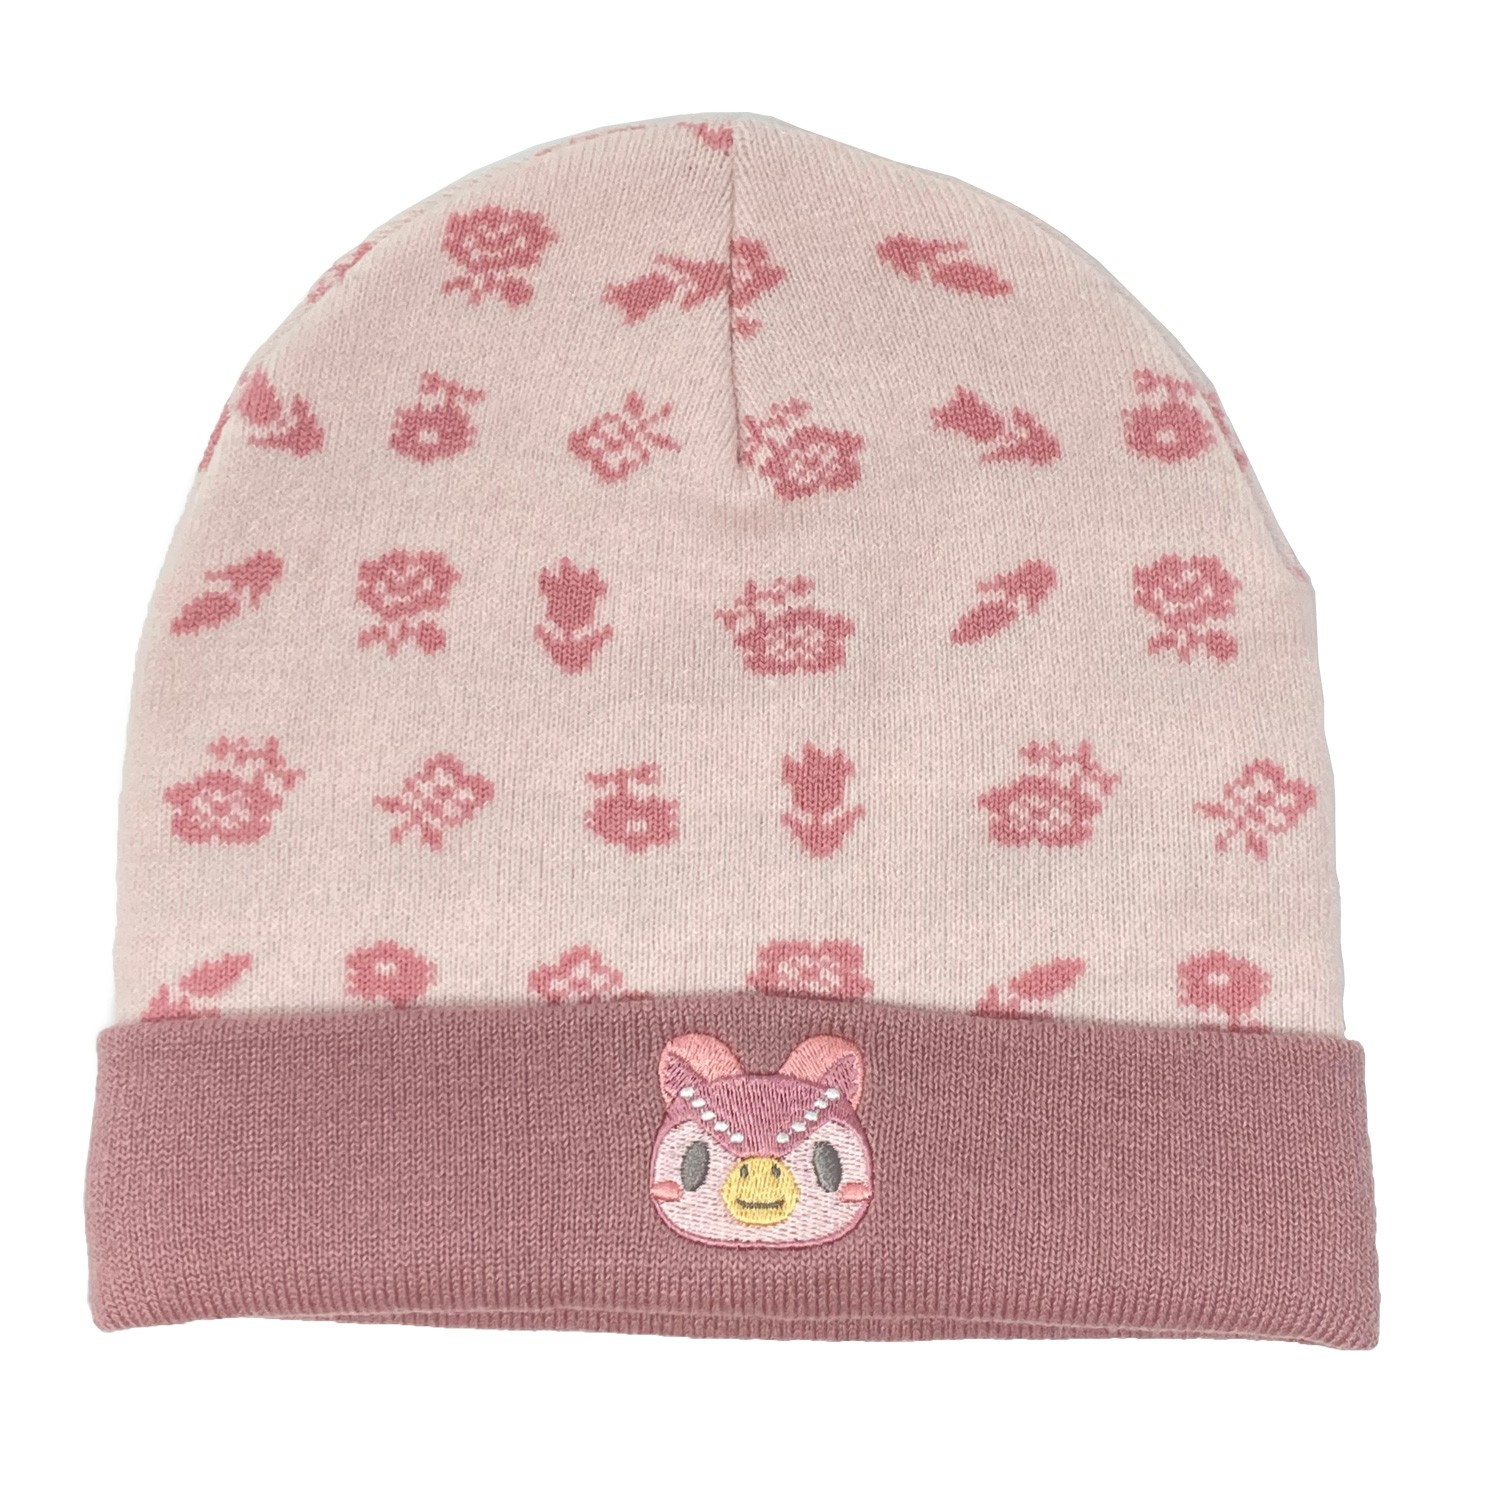 Officially Licensed Animal Crossing: New Horizons - Celeste Floral Knit Beanie Foldover and Tom Nook Beanie [2 Pack]